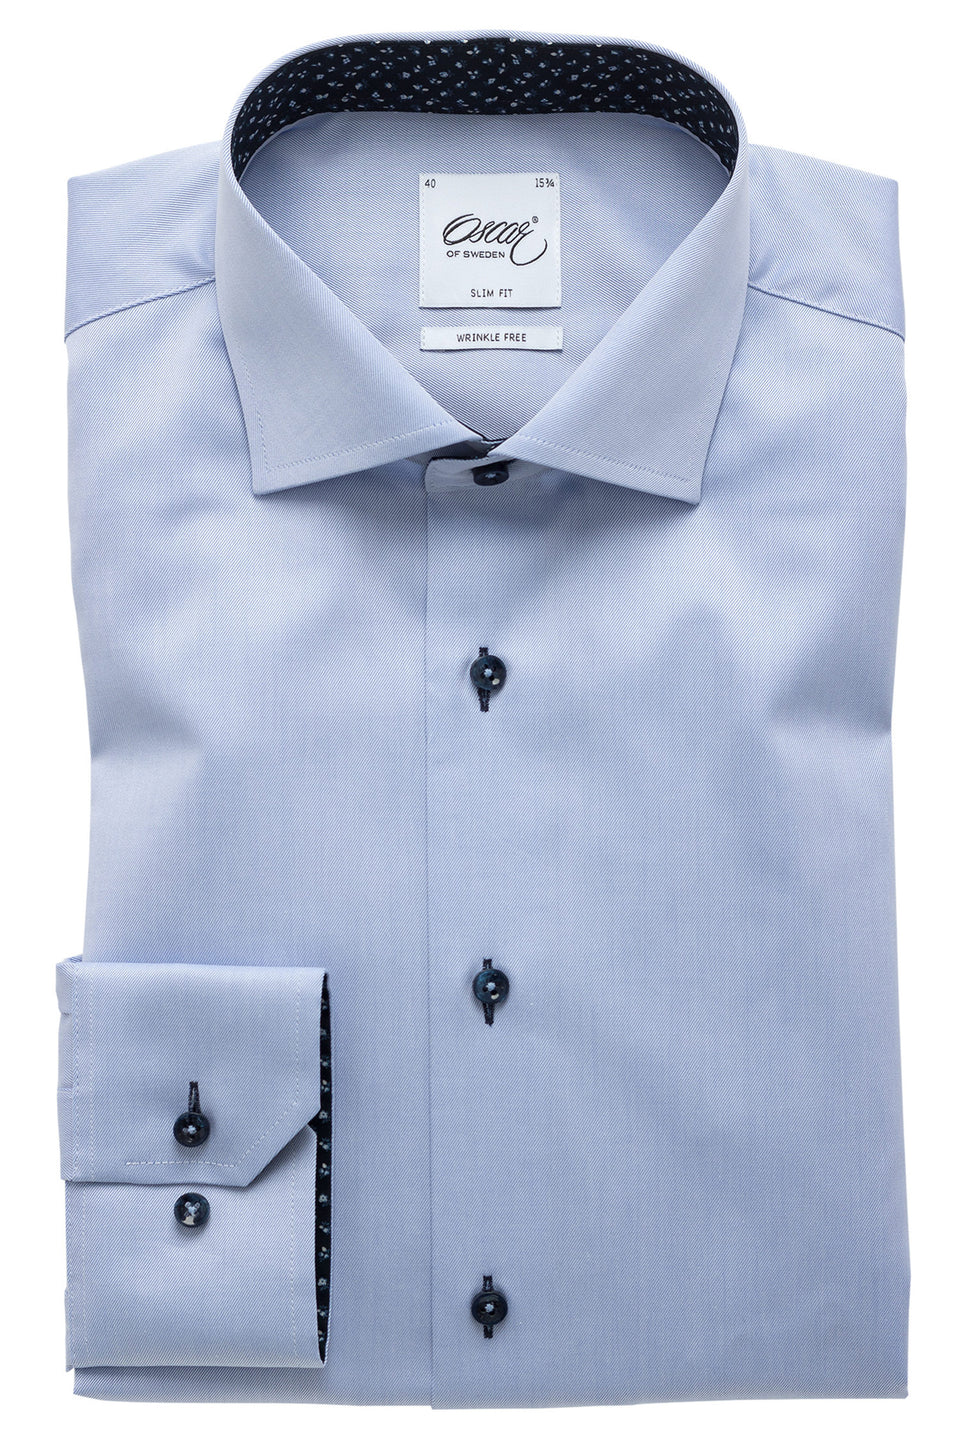 Light blue slim shirt with navy details